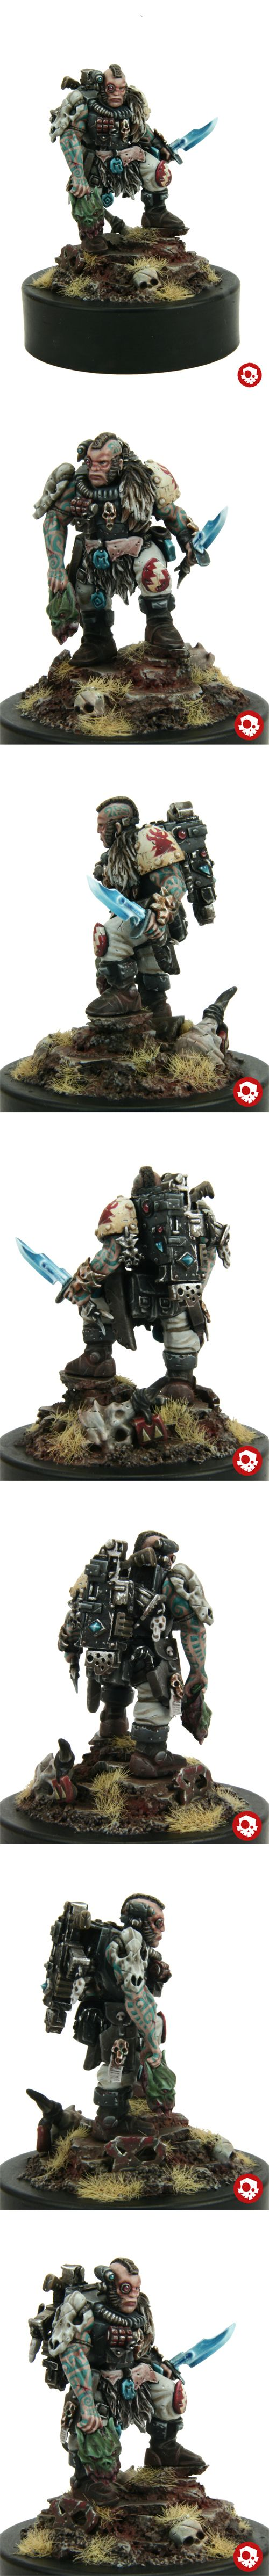 Space Wolves Scout, Warhammer 40k Space Marines